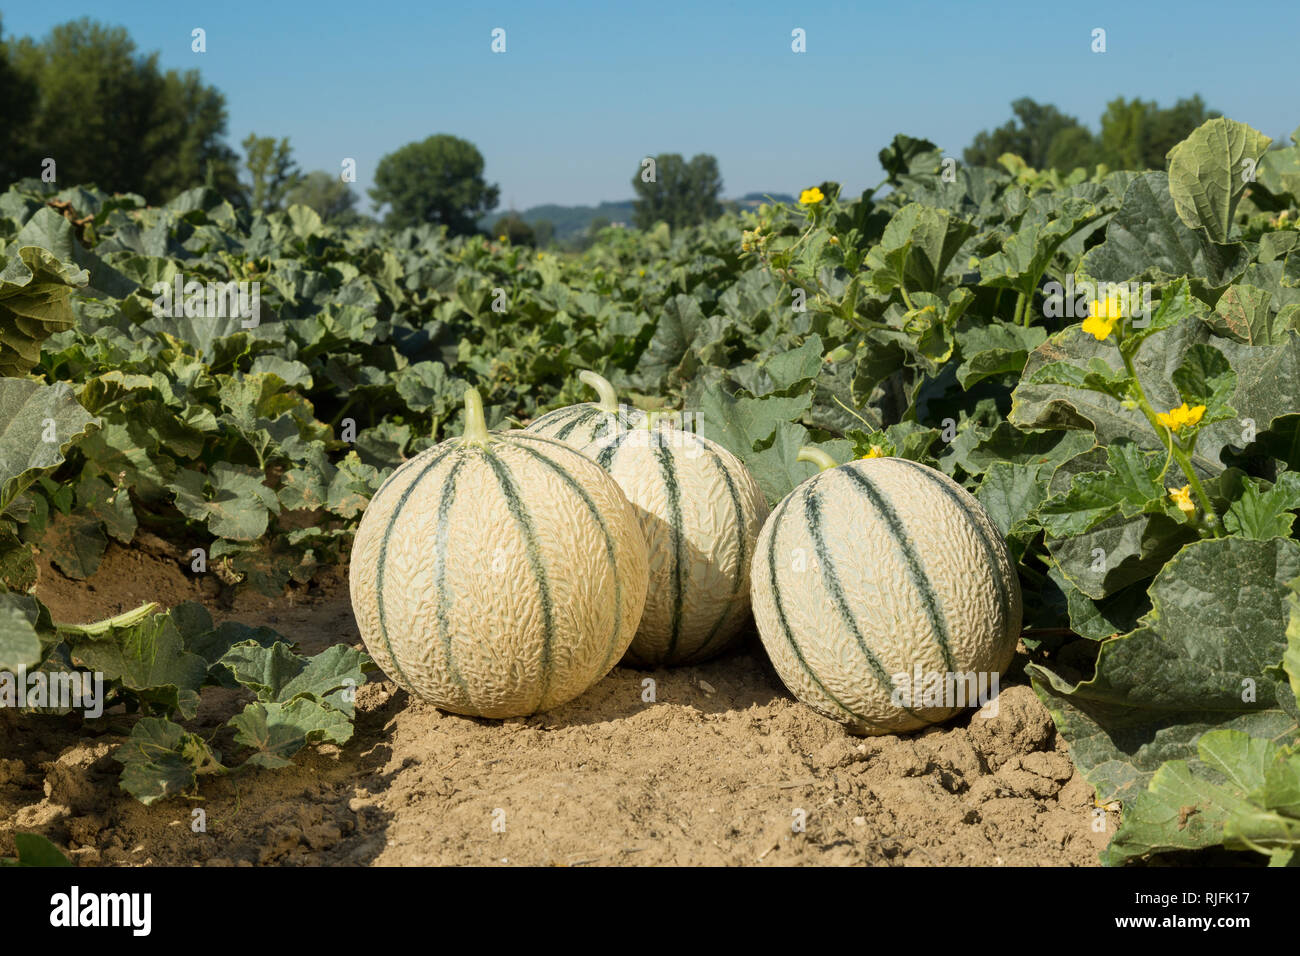 Cultivation of melon from Quercy in the Tarn-et-Garonne department (south-eastern France). Melons in a field - Stock Image